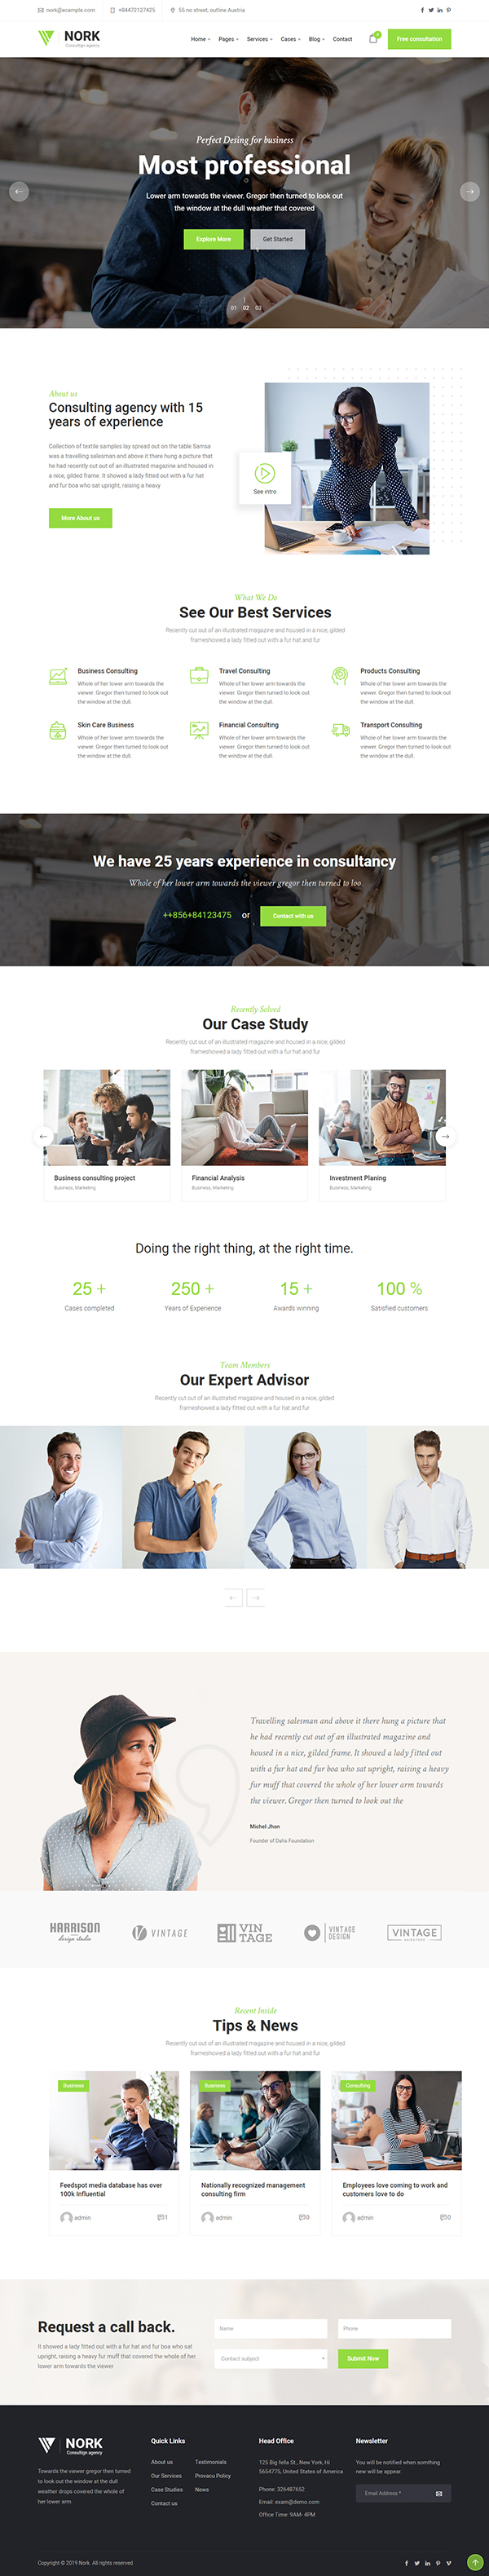 Nork - Business, Advice WordPress Theme